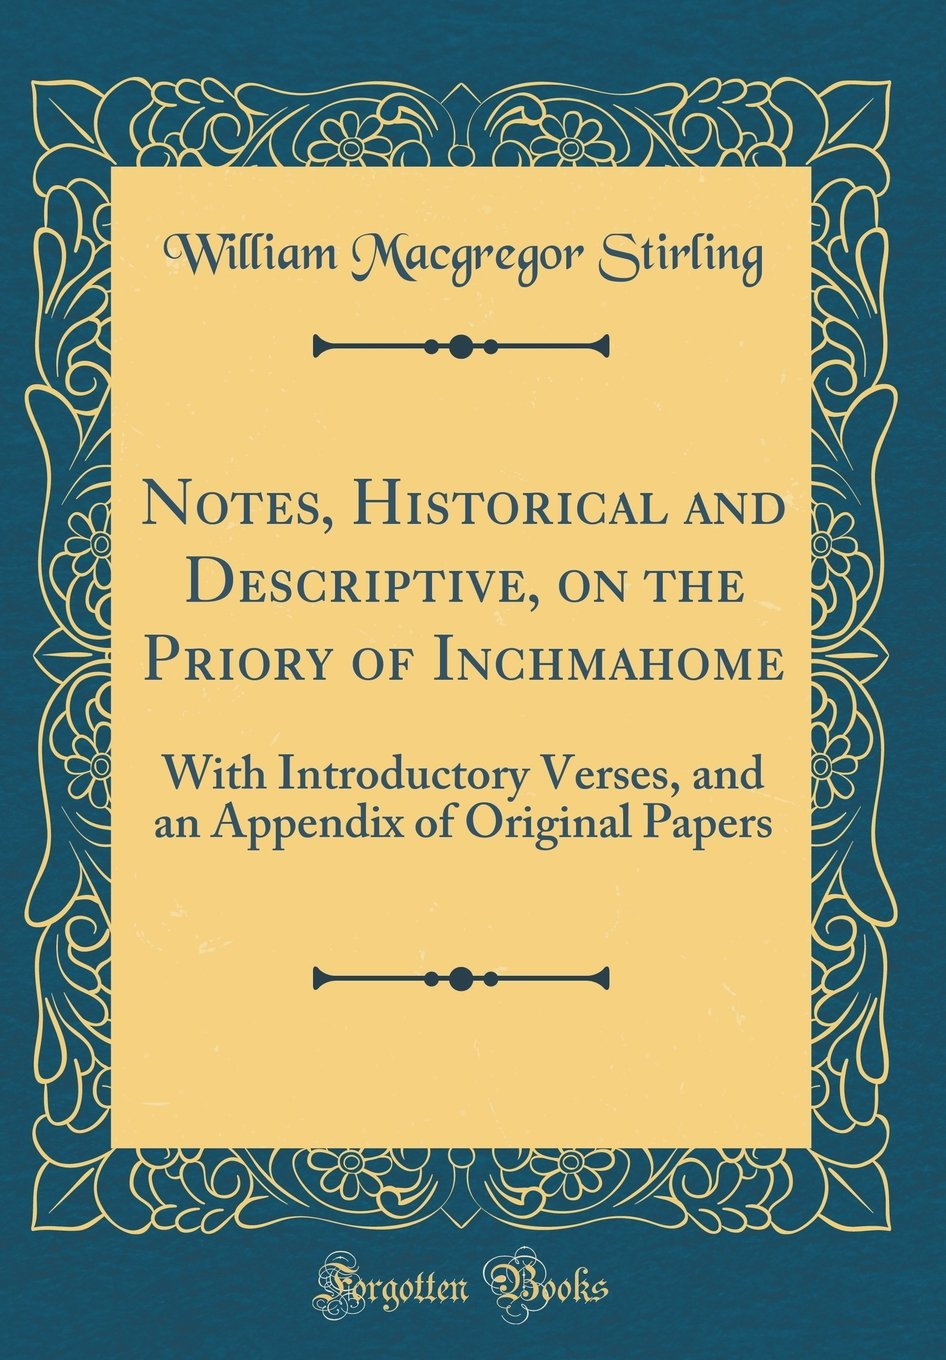 Notes, Historical and Descriptive, on the Priory of Inchmahome: With Introductory Verses, and an Appendix of Original Papers (Classic Reprint) PDF